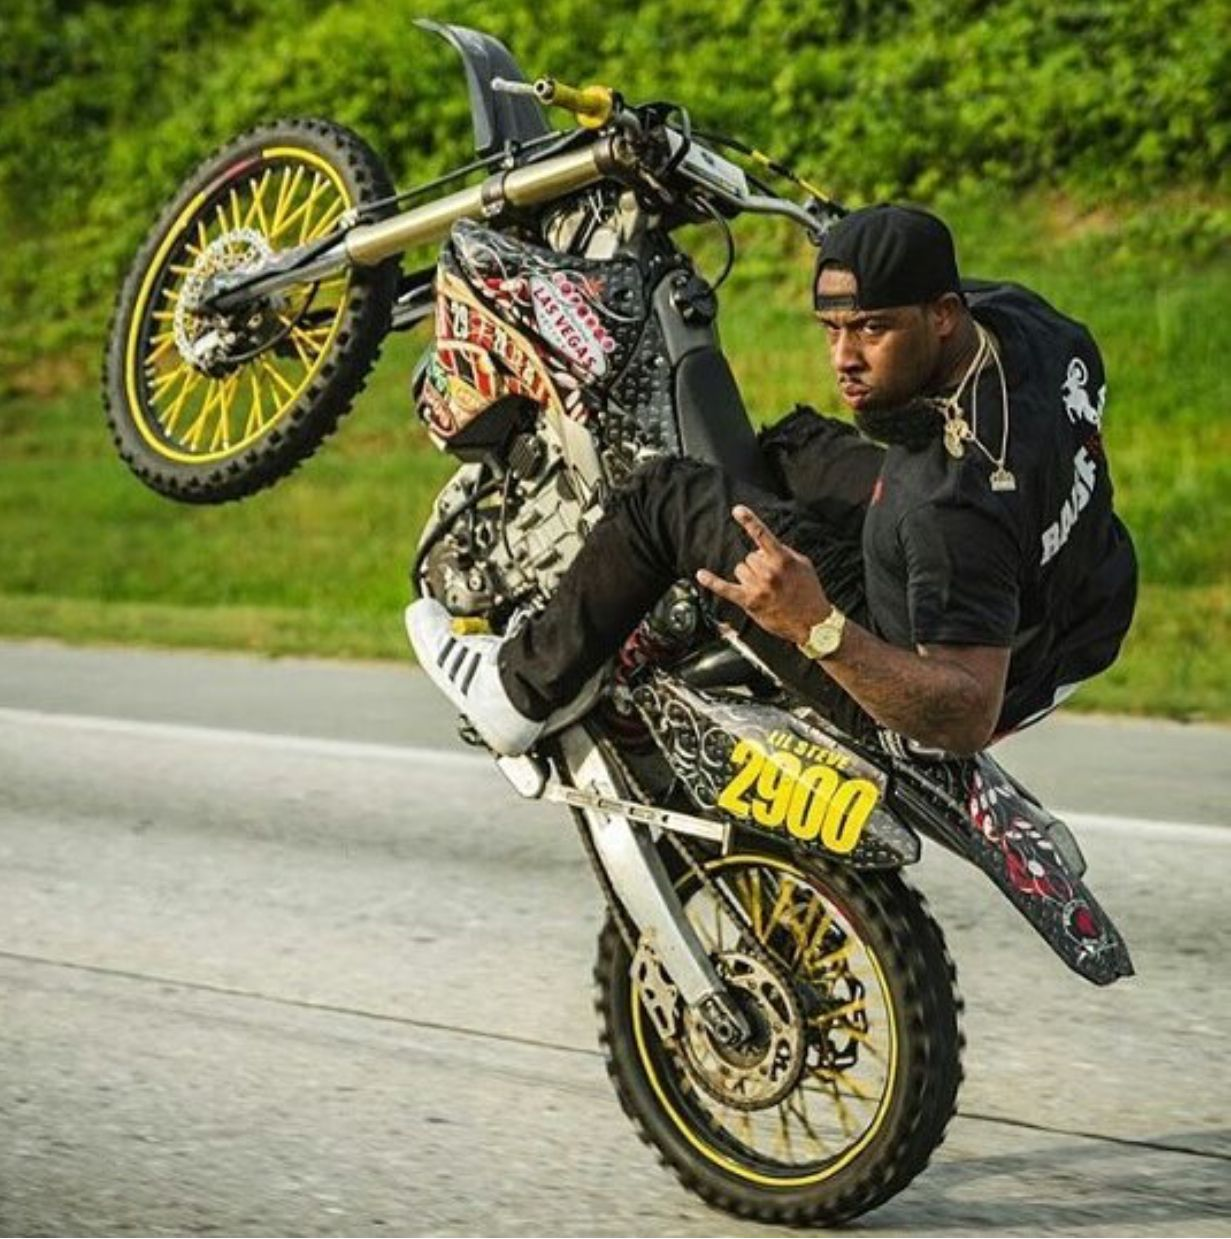 Pin By Dave On Cycles Moto Bike Dirt Bikes Motocross